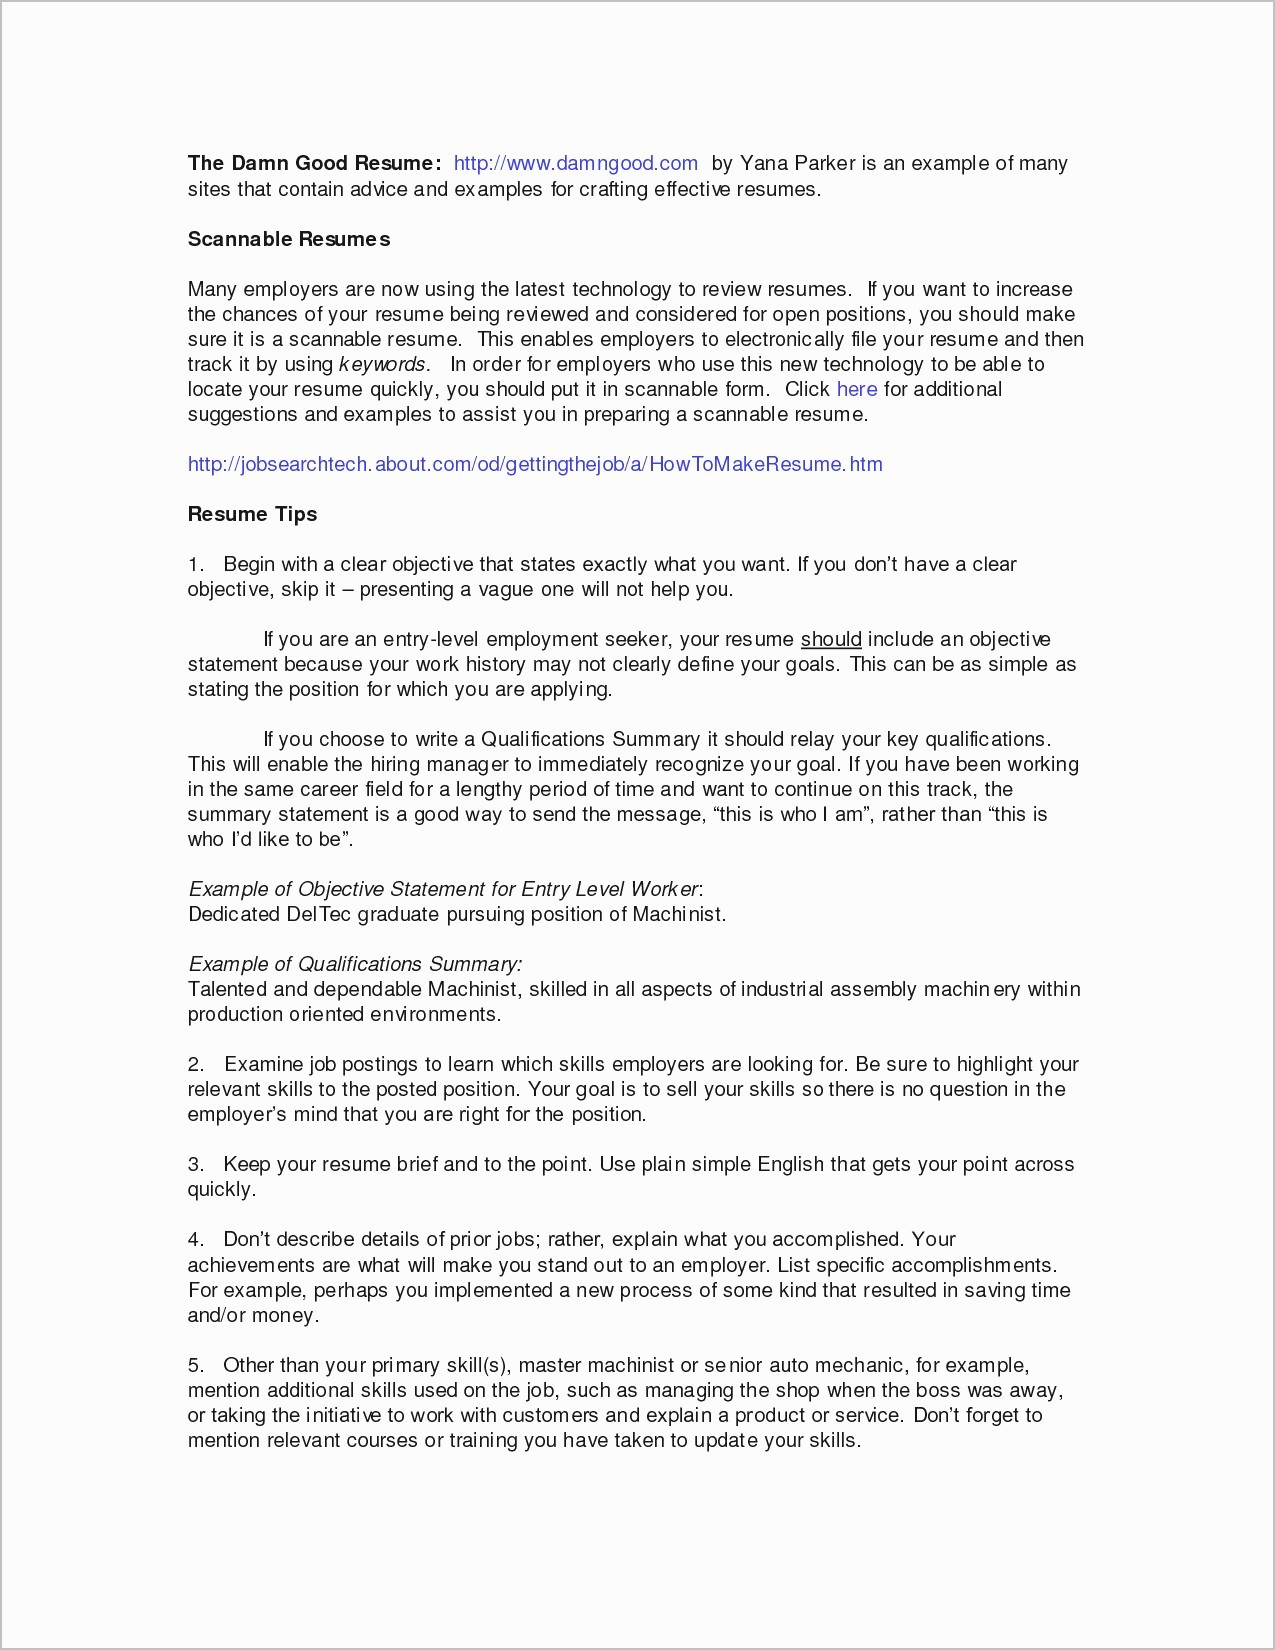 Resume for Correctional Officer - Resume for Correctional Ficer 25 Inspirational Sample Resume for